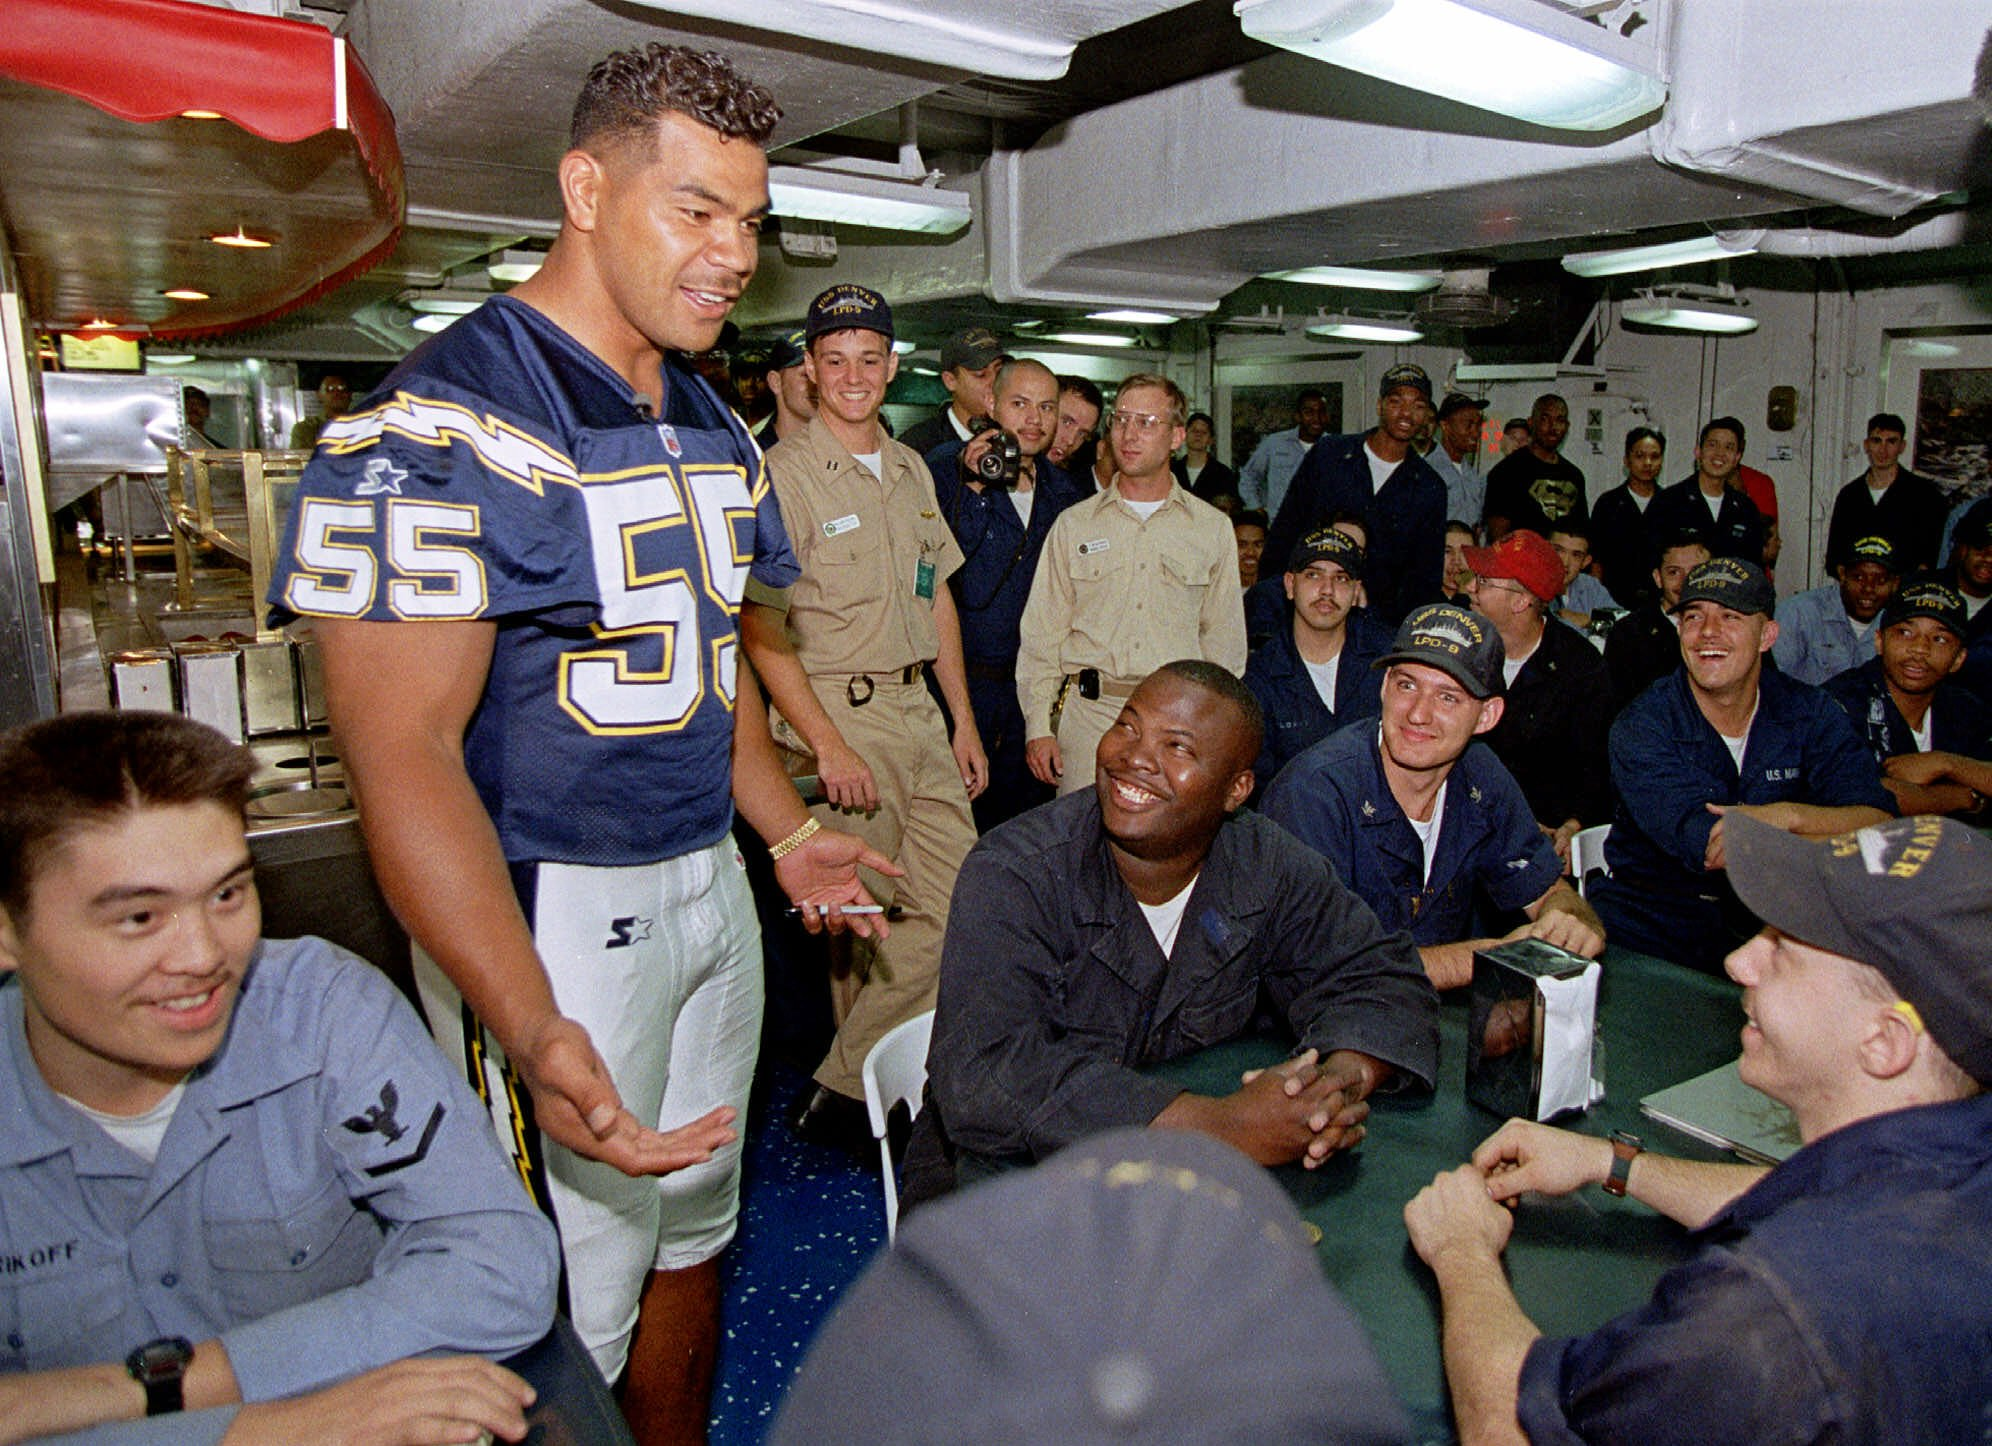 SEAU San Diego Chargers defensive back Junior Seau jokes with sailors in the mess hall aboard the USS Denver, which is docked at the 32nd Street Naval Station in San Diego, . Seau and teammates came aboard the ship to sign autographs and thank fans for their support after last year's losing season. The visit is part of a three-day Chargers campaign to enlist fan support for the coming seasonCHARGERS FANS, SAN DIEGO, USA